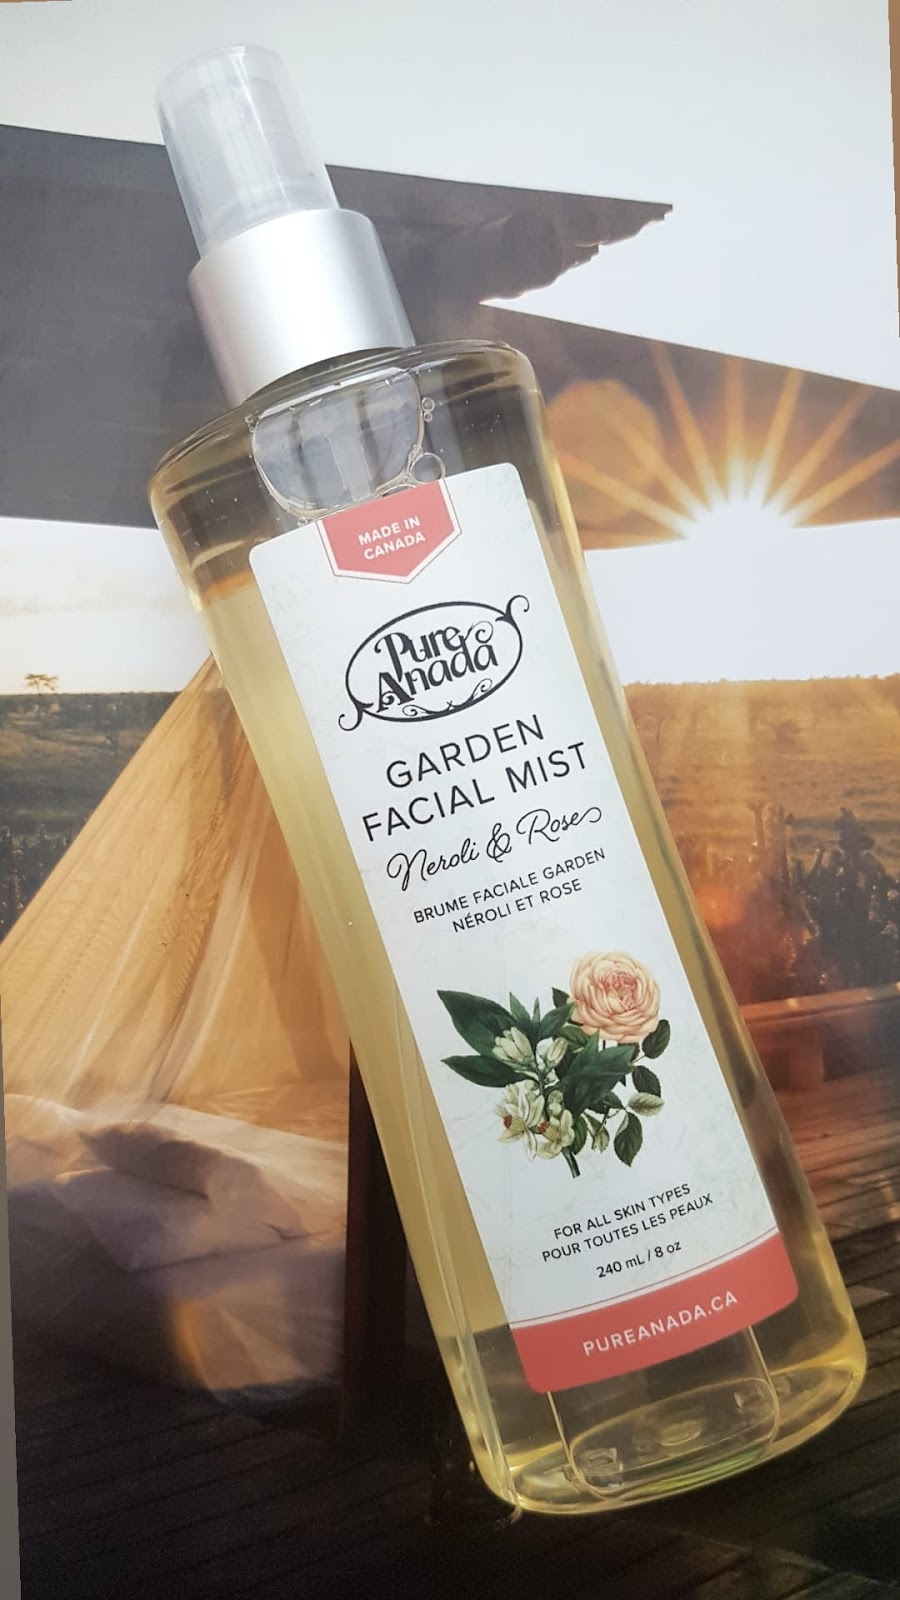 Pure Anada Garden Facial Mist Review from Live in the Light